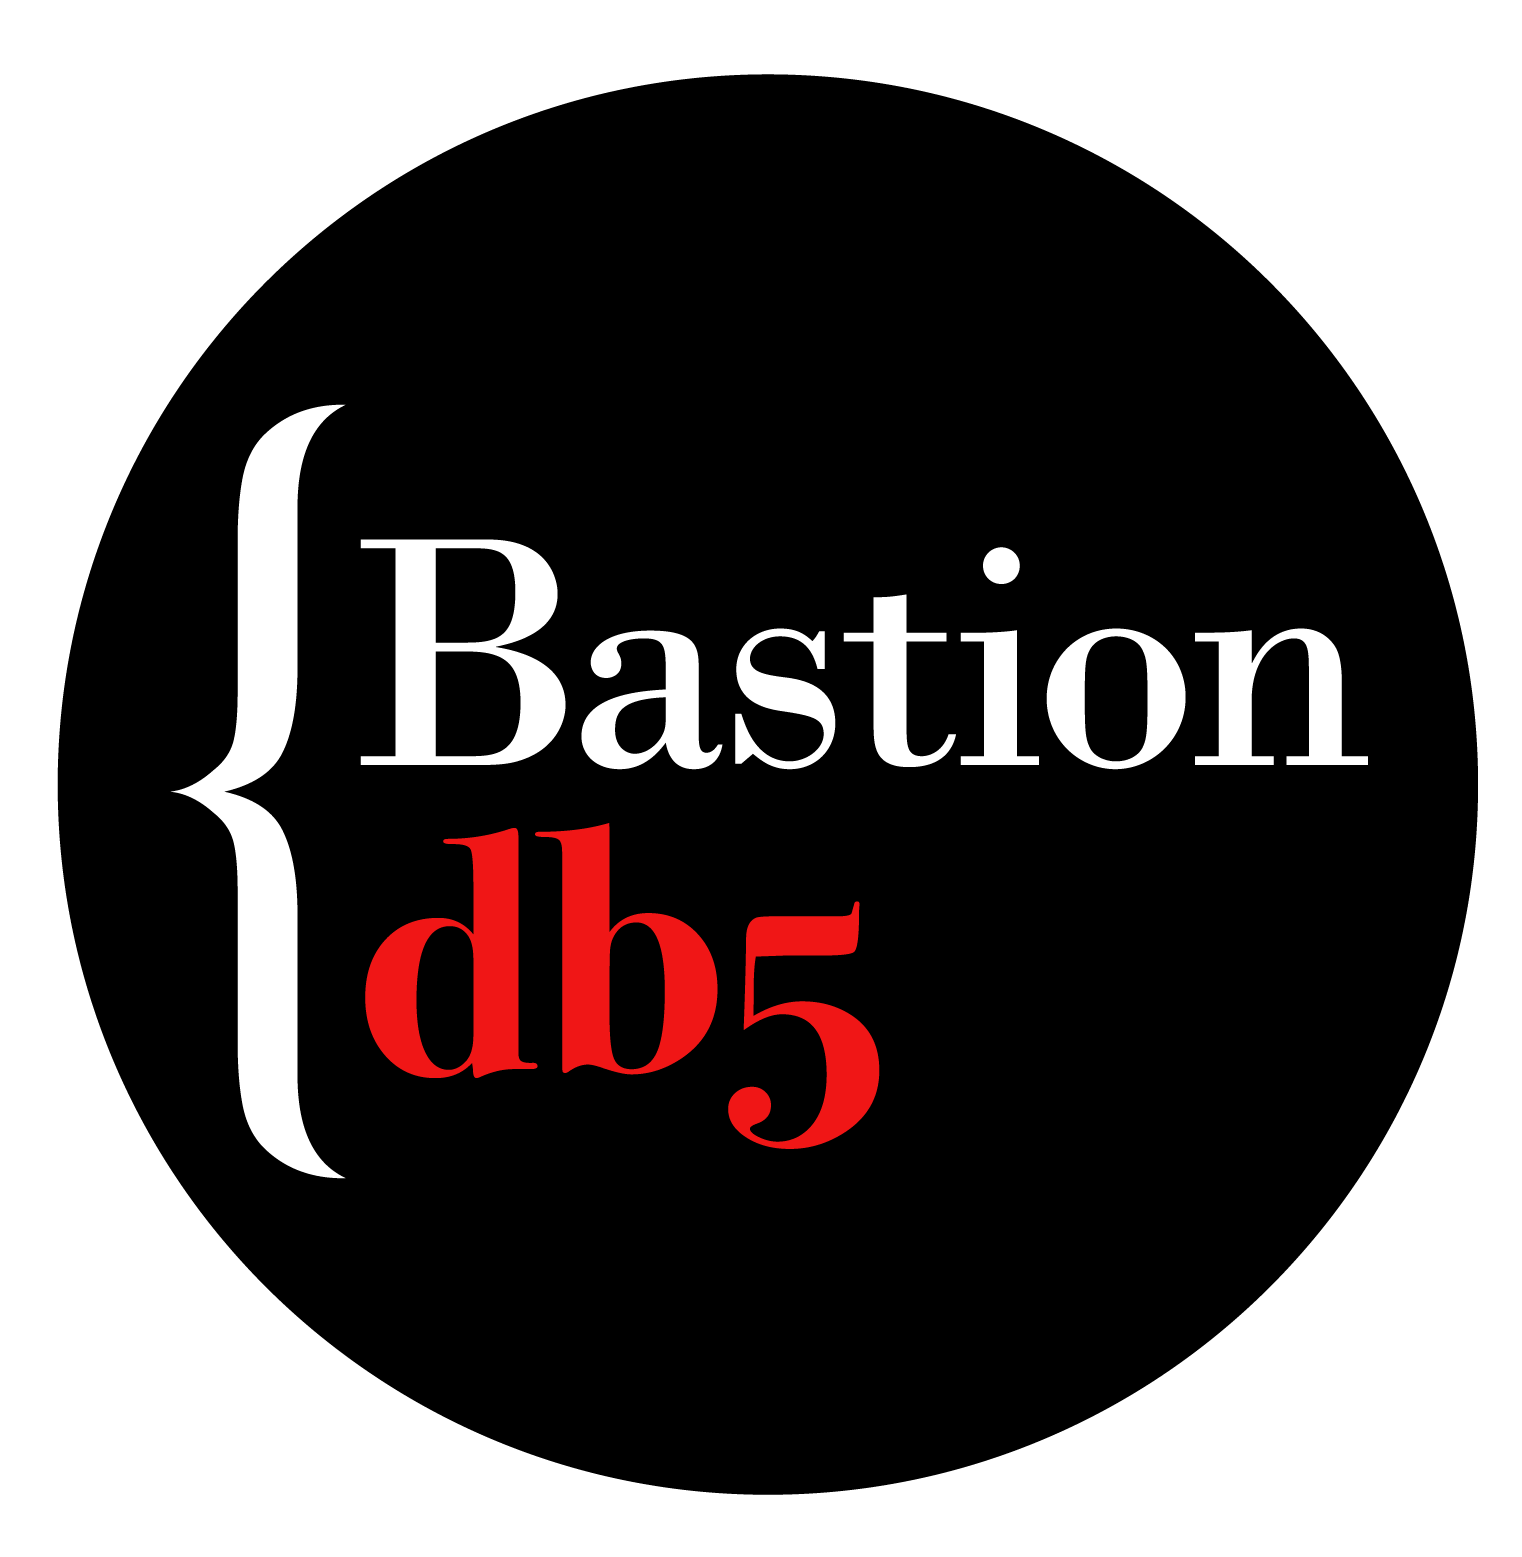 Bastion db5 Logo